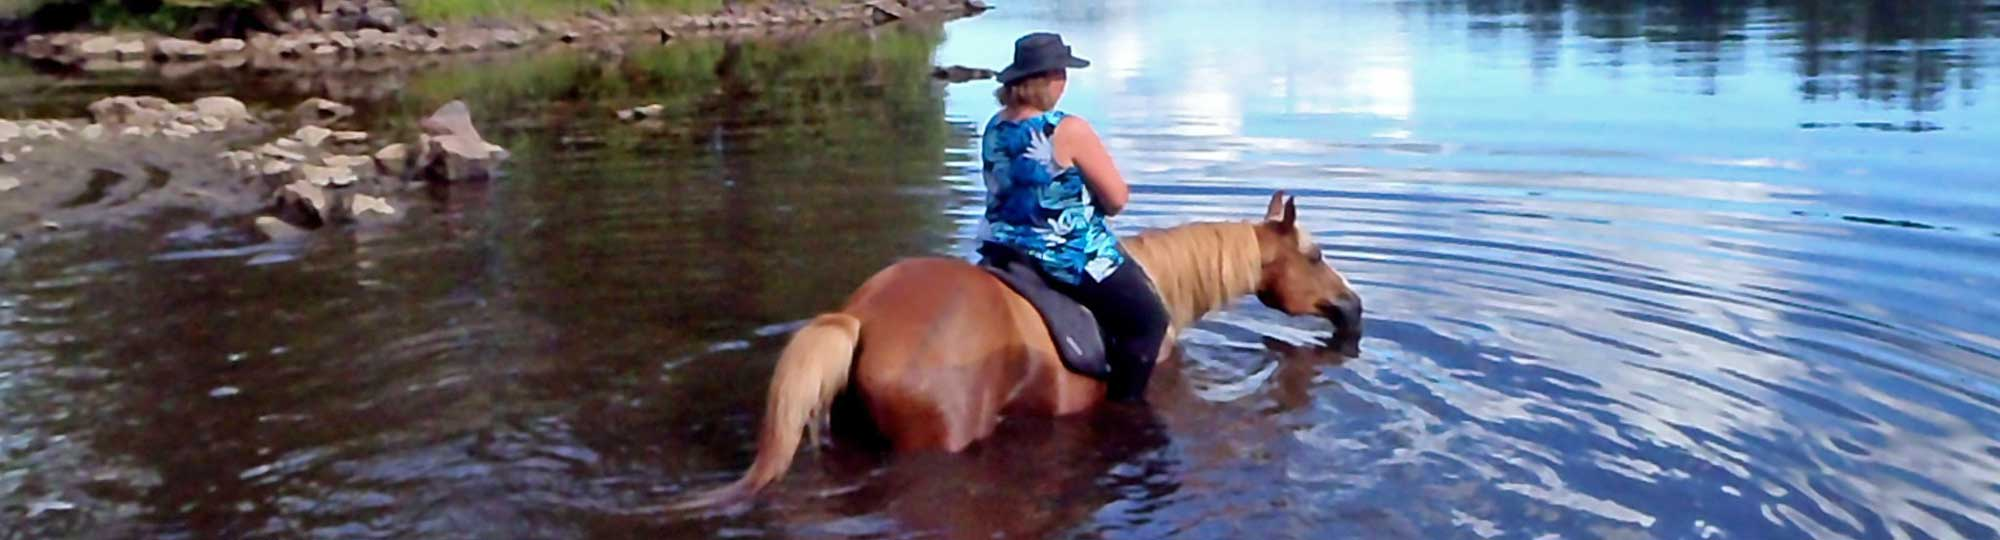 Horse-swimming-at-horse-country-campground.jpg